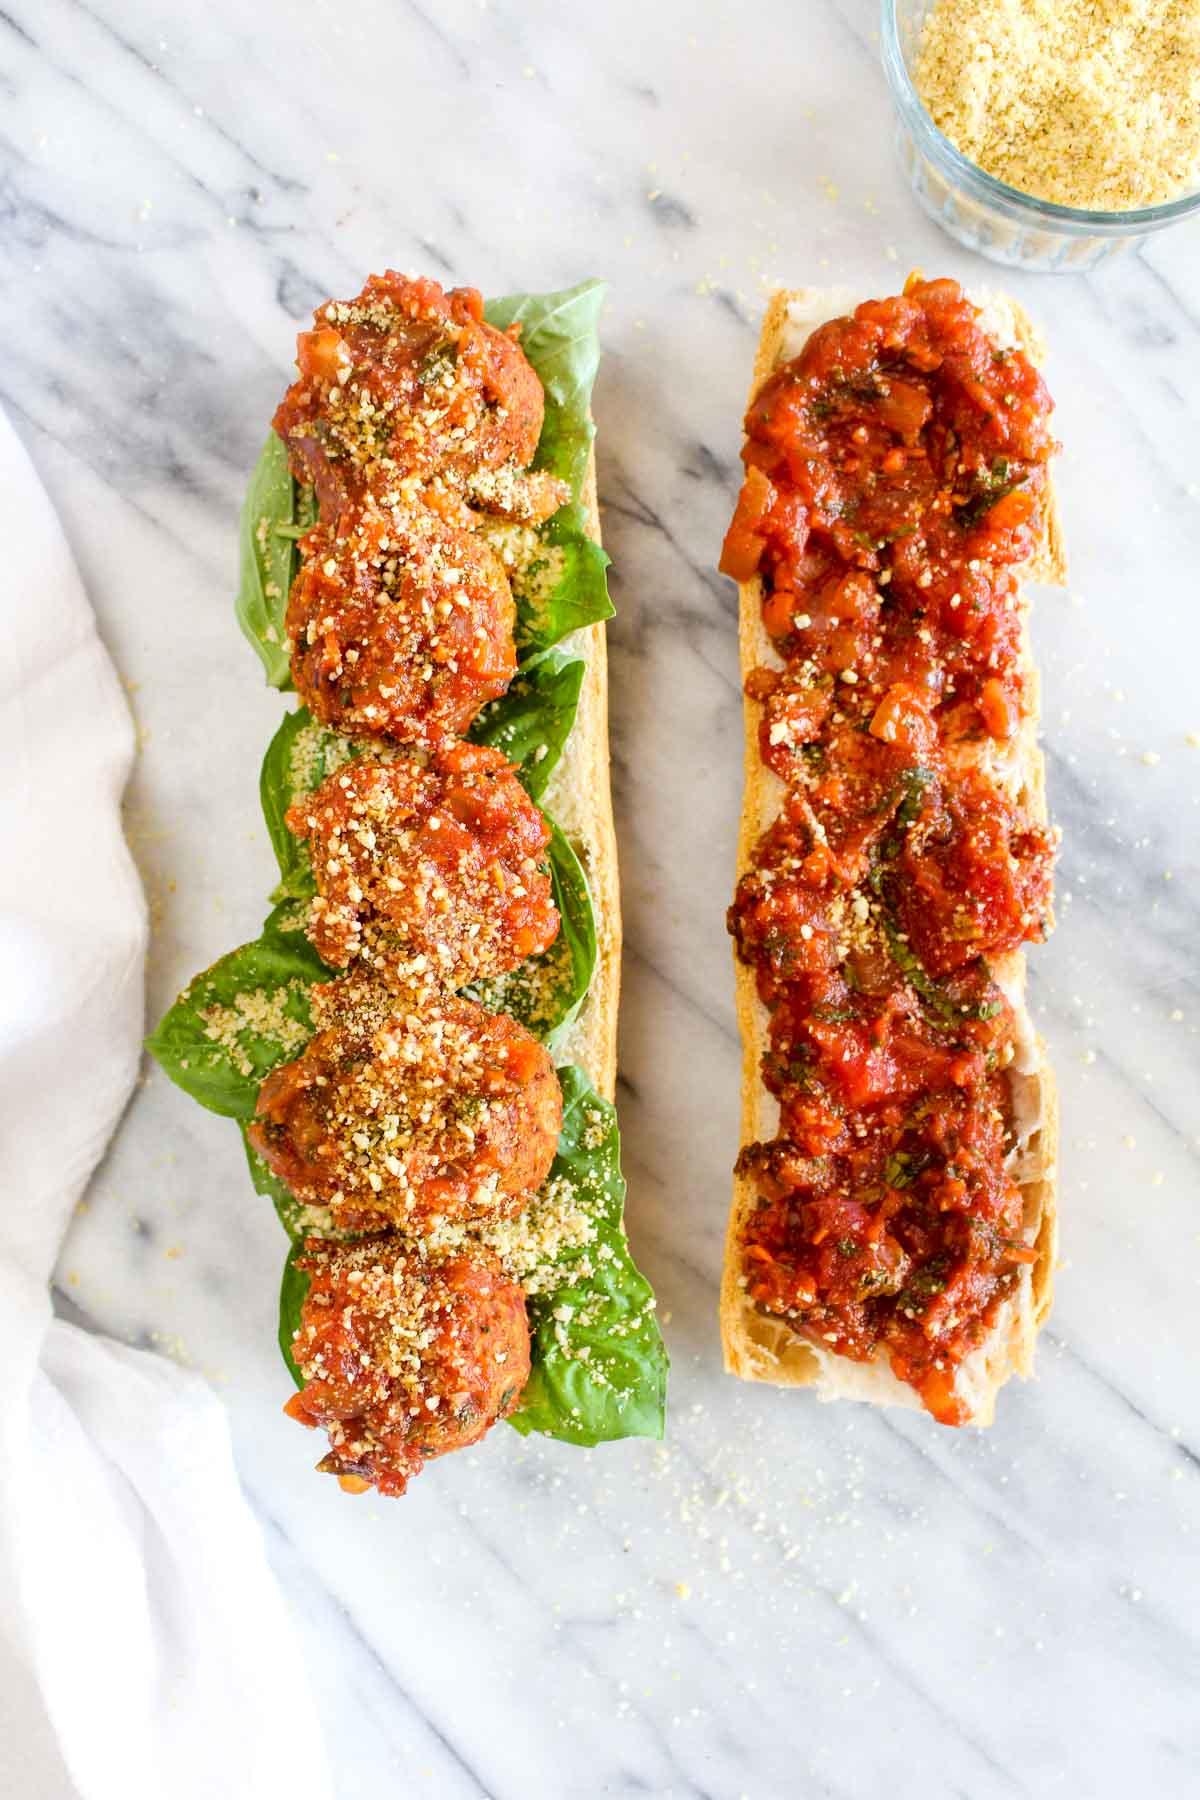 A white baguette with one side covered with basil, vegan meatballs, and parmesan, and the other side covered with marinara sauce on a marble background.